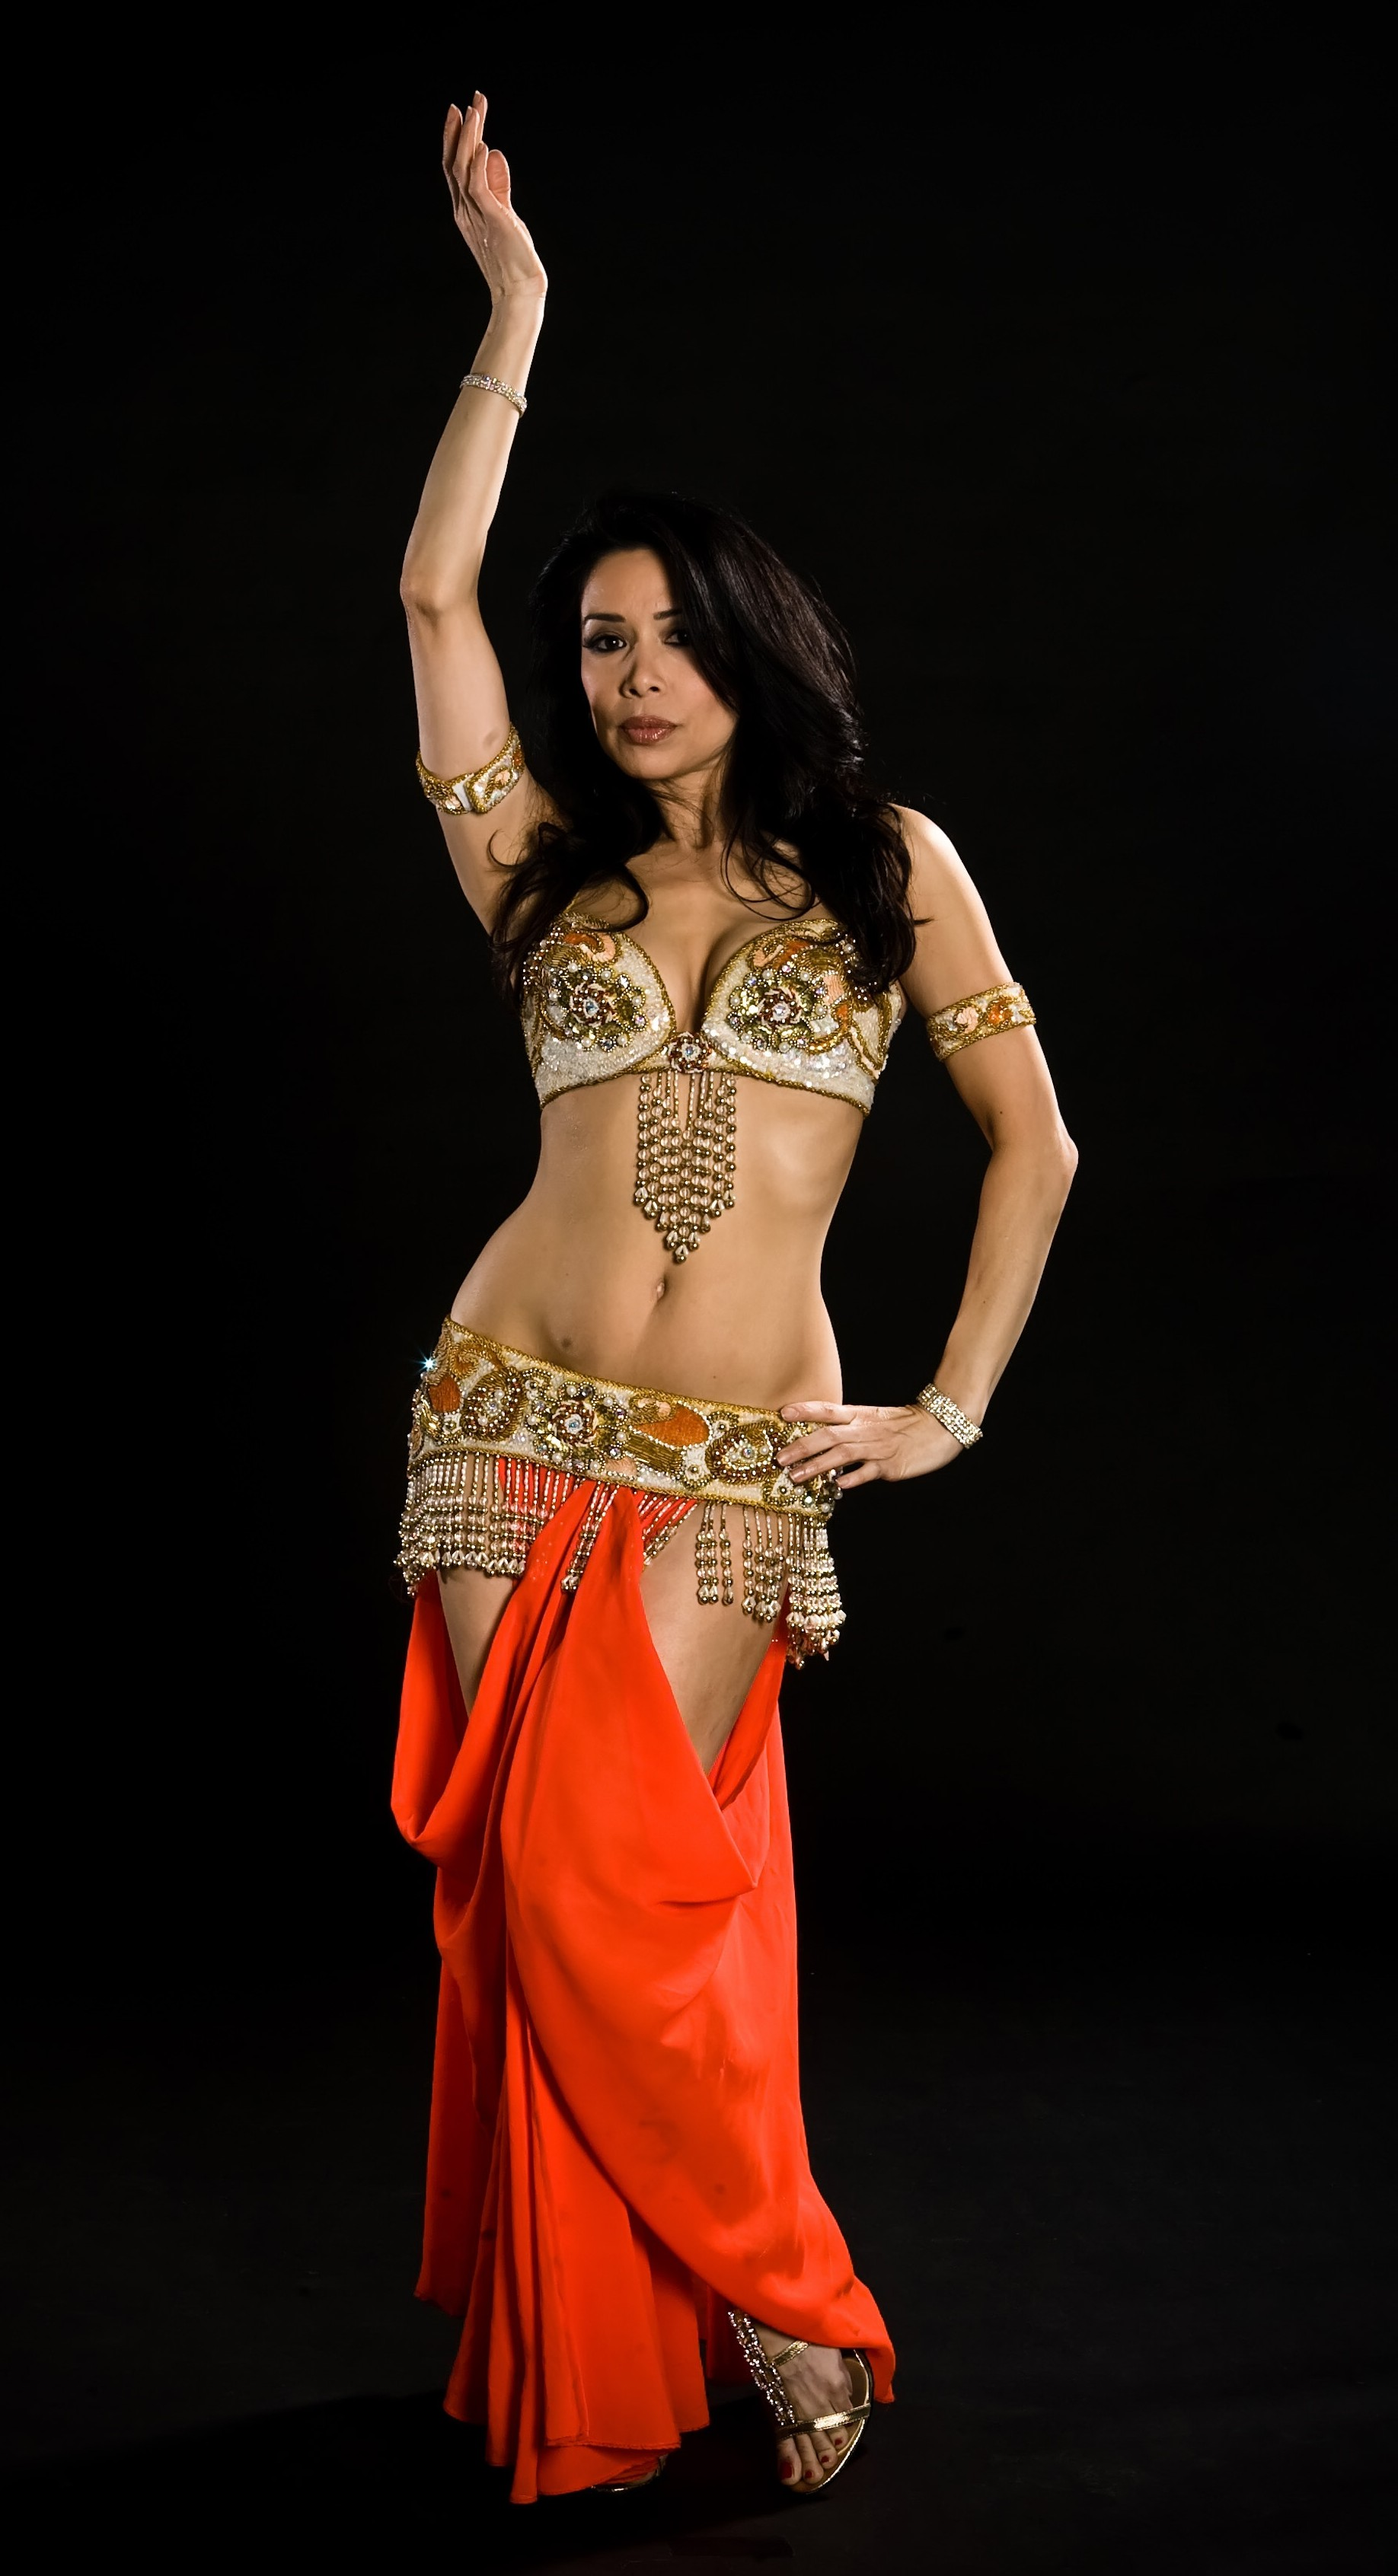 Egyptian shakira hot belly dancer and singer 3rabxxxtumblrcom - 1 7